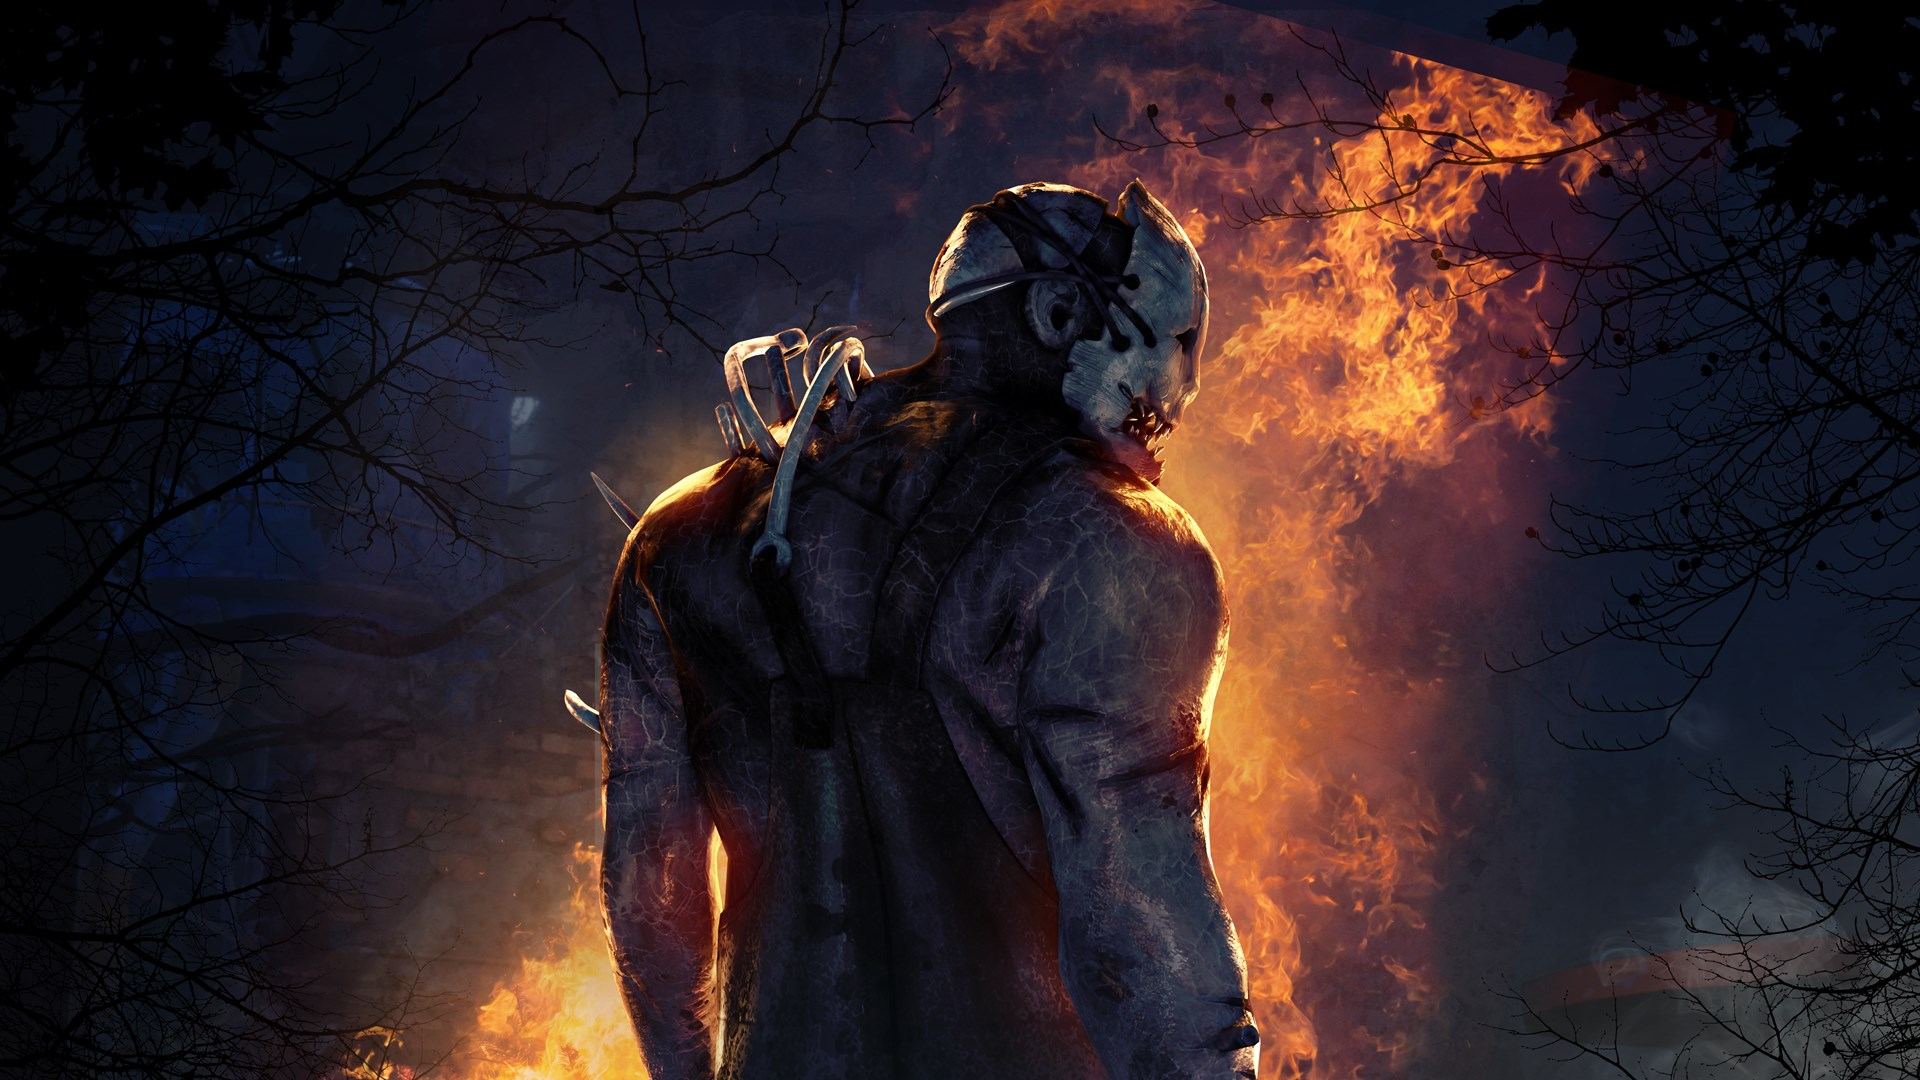 The trapper from Dead by Daylight with his back to the reader, looking over his shoulder. There is fire behind him.